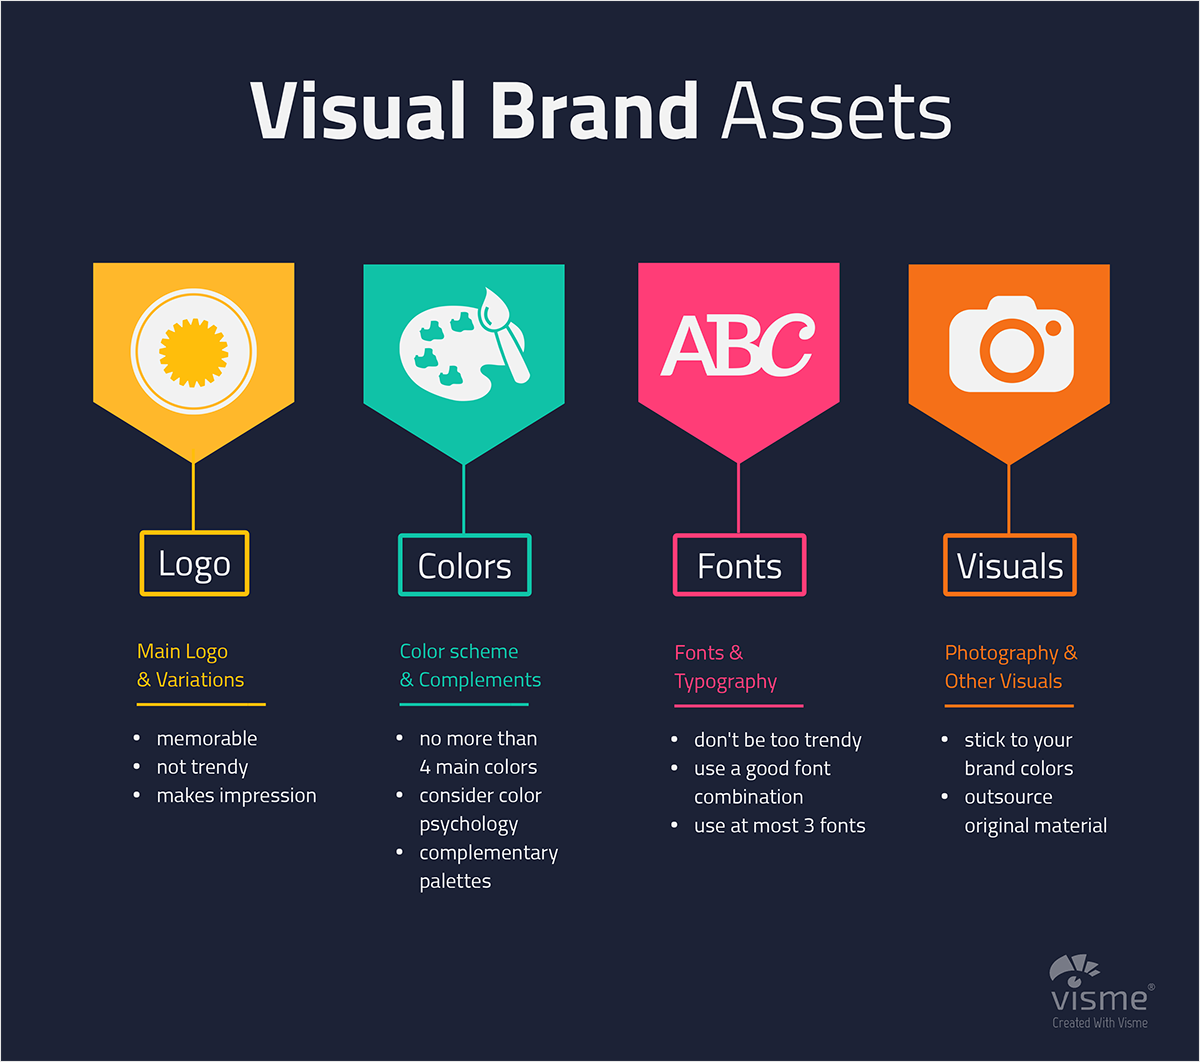 logo, colors, fonts, and visuals brand assets infographic